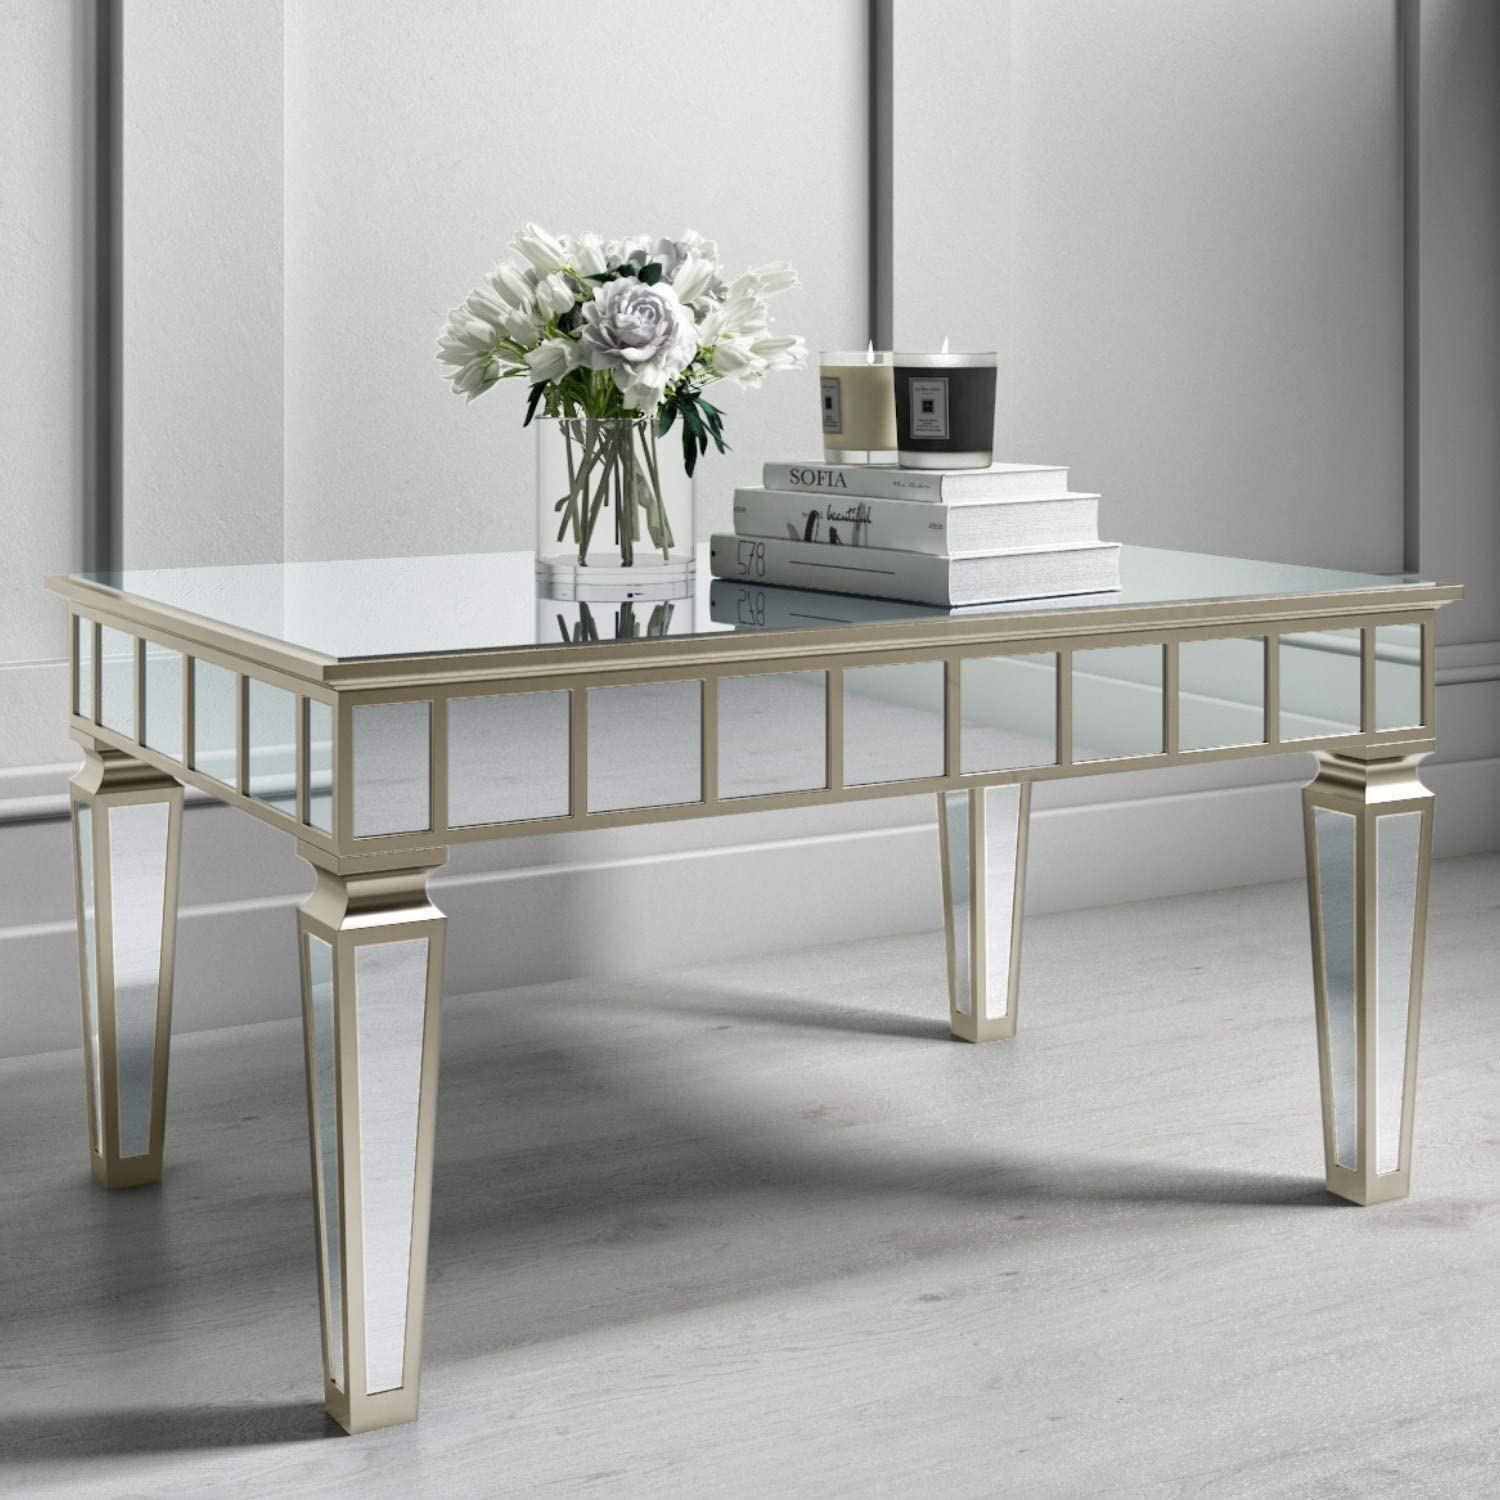 Jade Boutique Mirrored Coffee Table With Gold Detailing Amazon Co Uk Kitchen Home